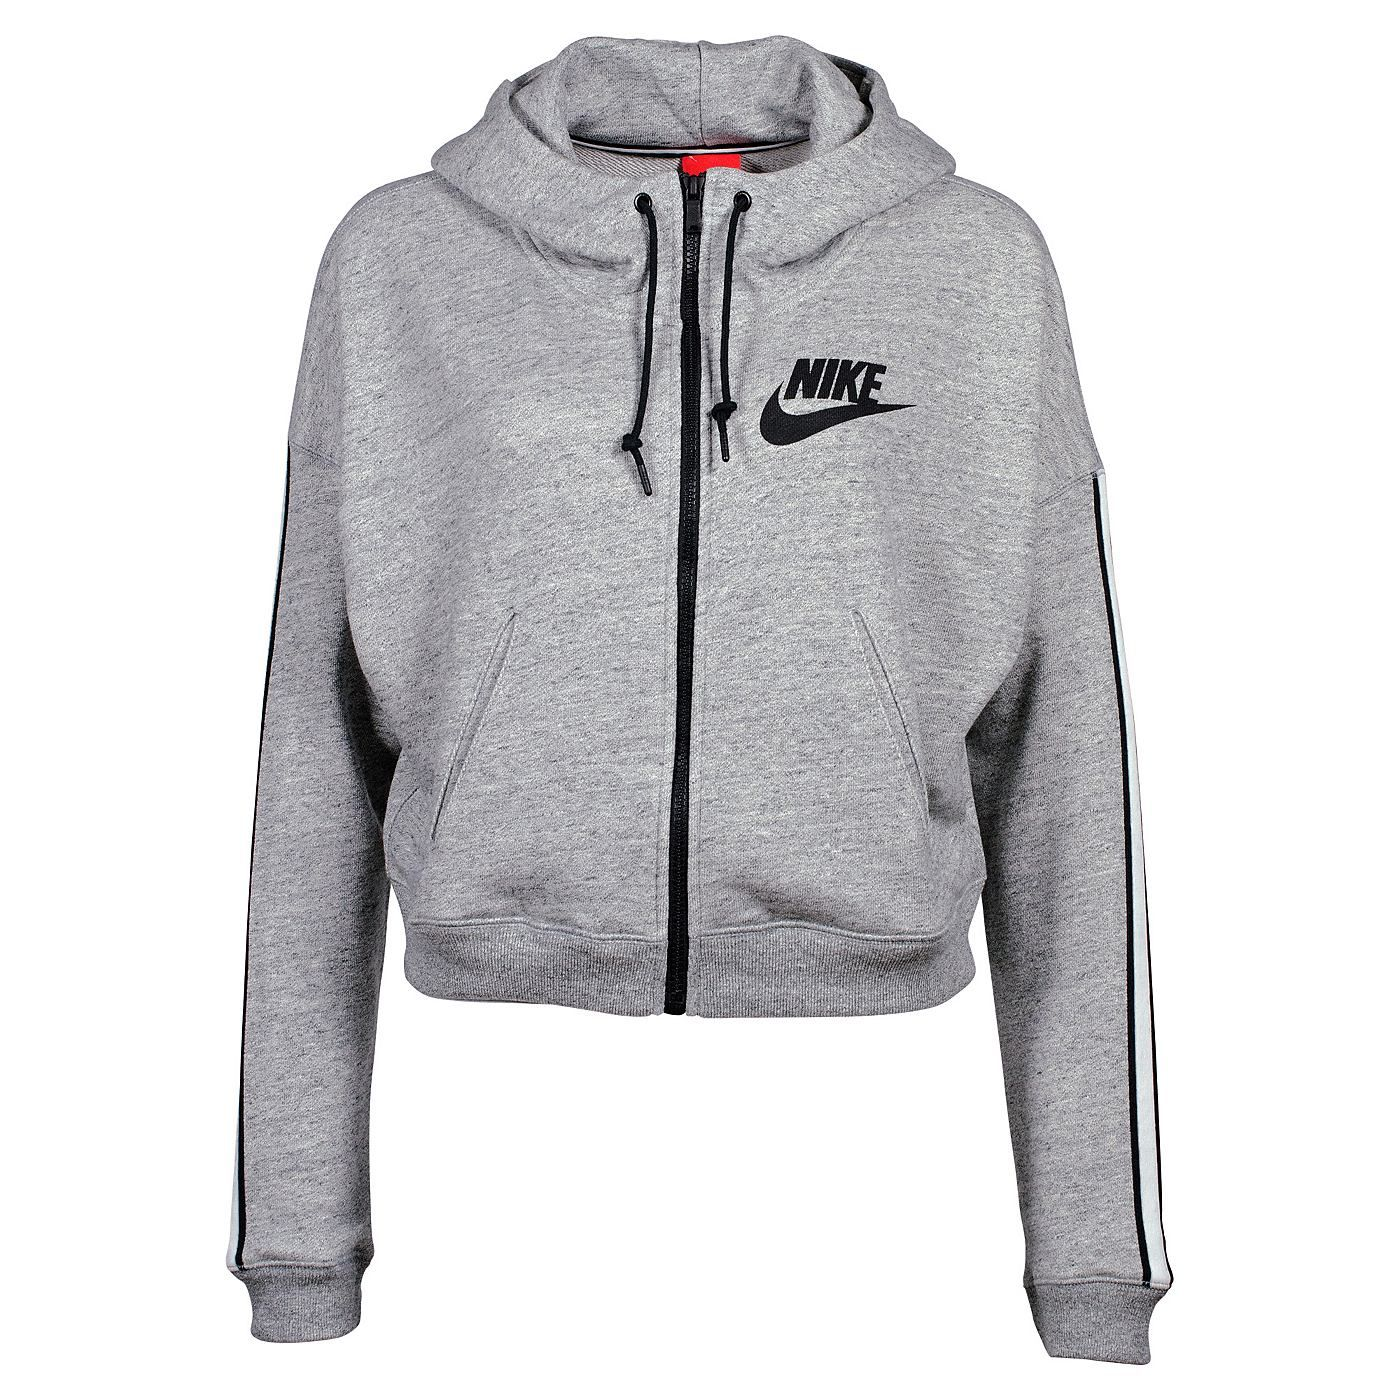 District Kapuzenjacke Die Damen 72 Für Nike W2DHEI9